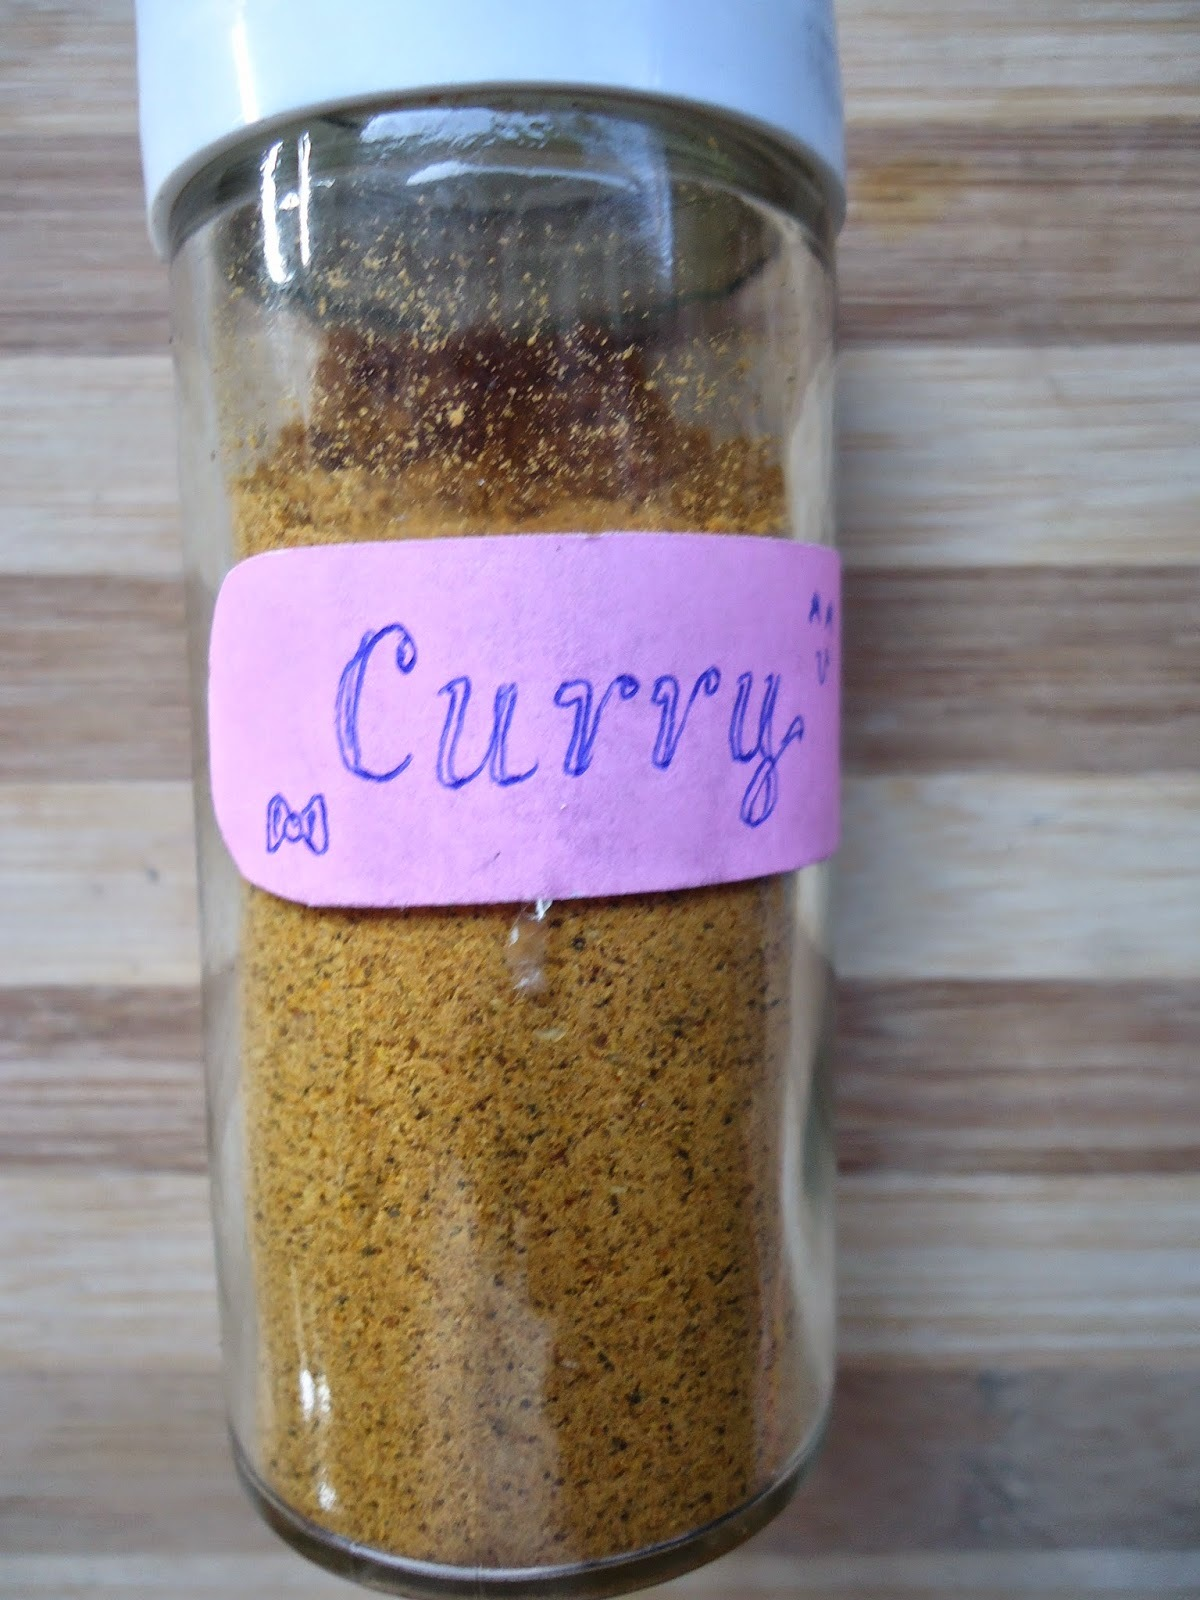 Curry Powder: composition, origin and health benefits of